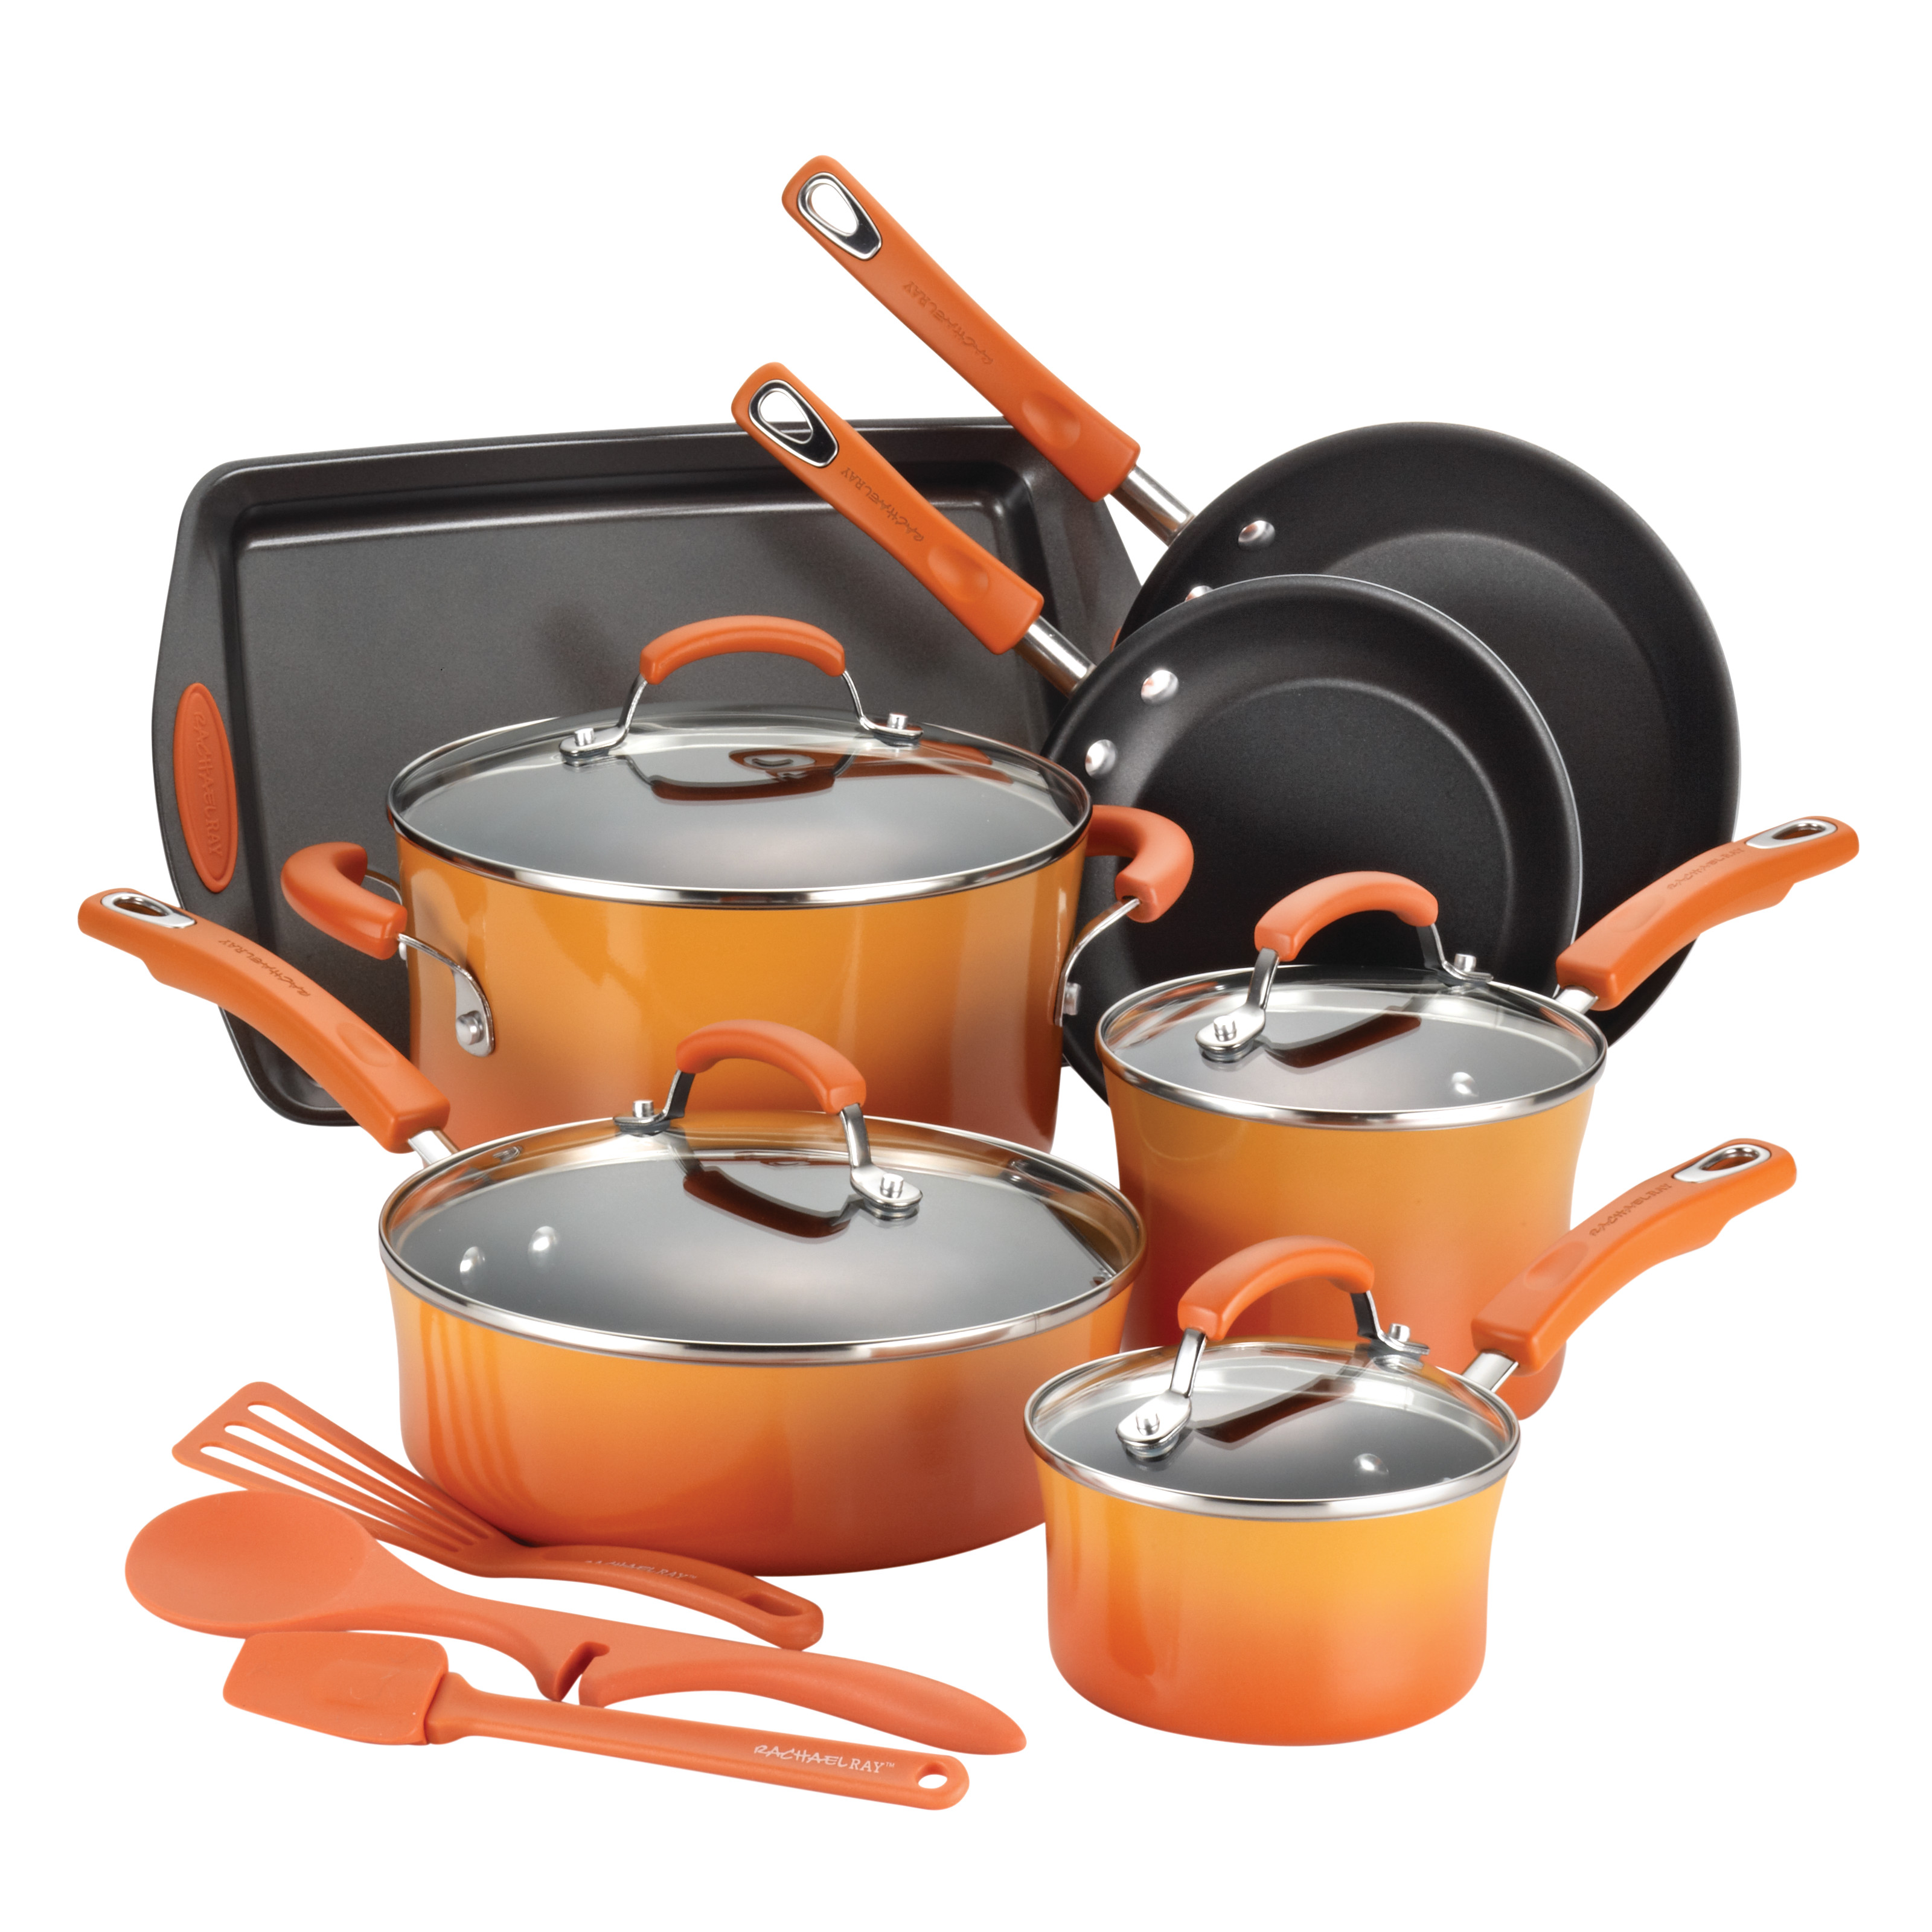 Rachael Ray Hard Enamel Nonstick 14-Piece Cookware Set, Orange Gradient